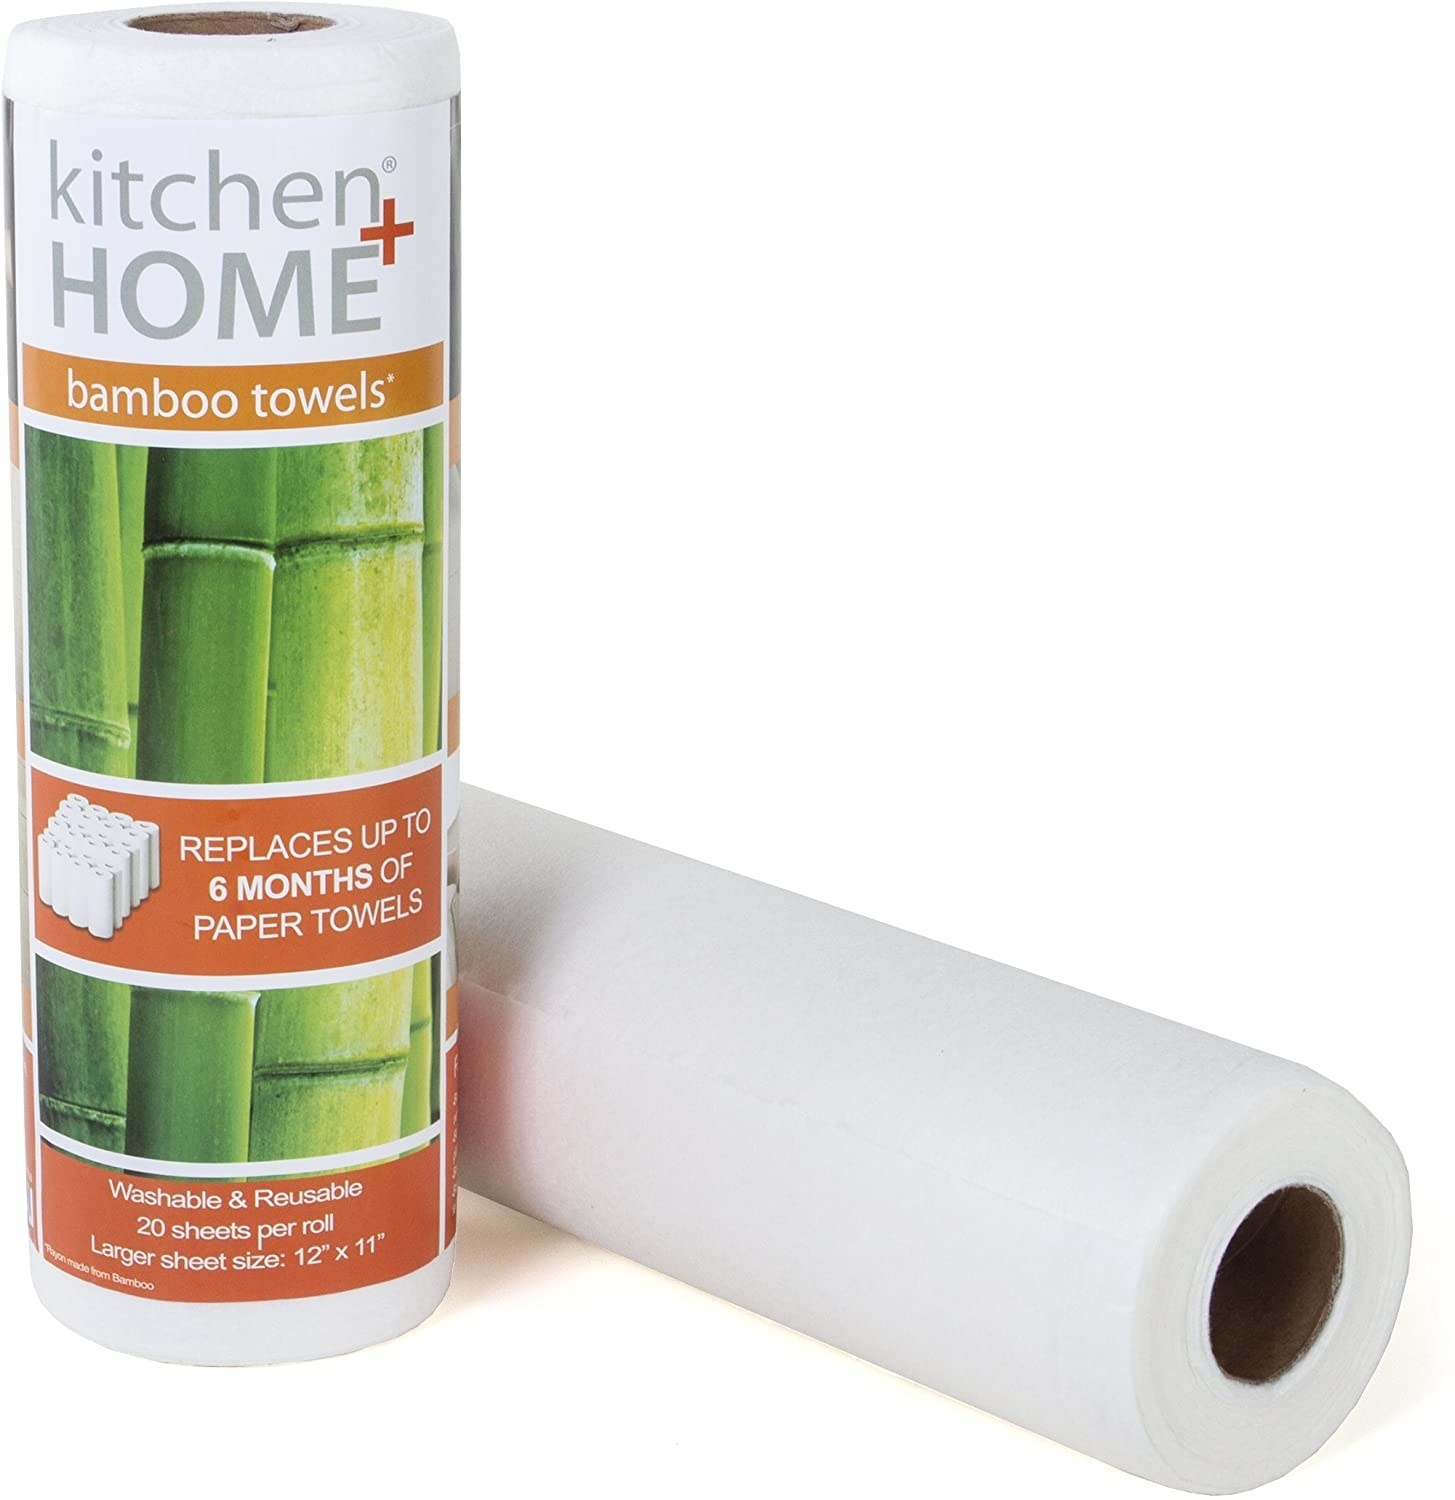 Product photo showing outside packaging as well as roll of bamboo towels